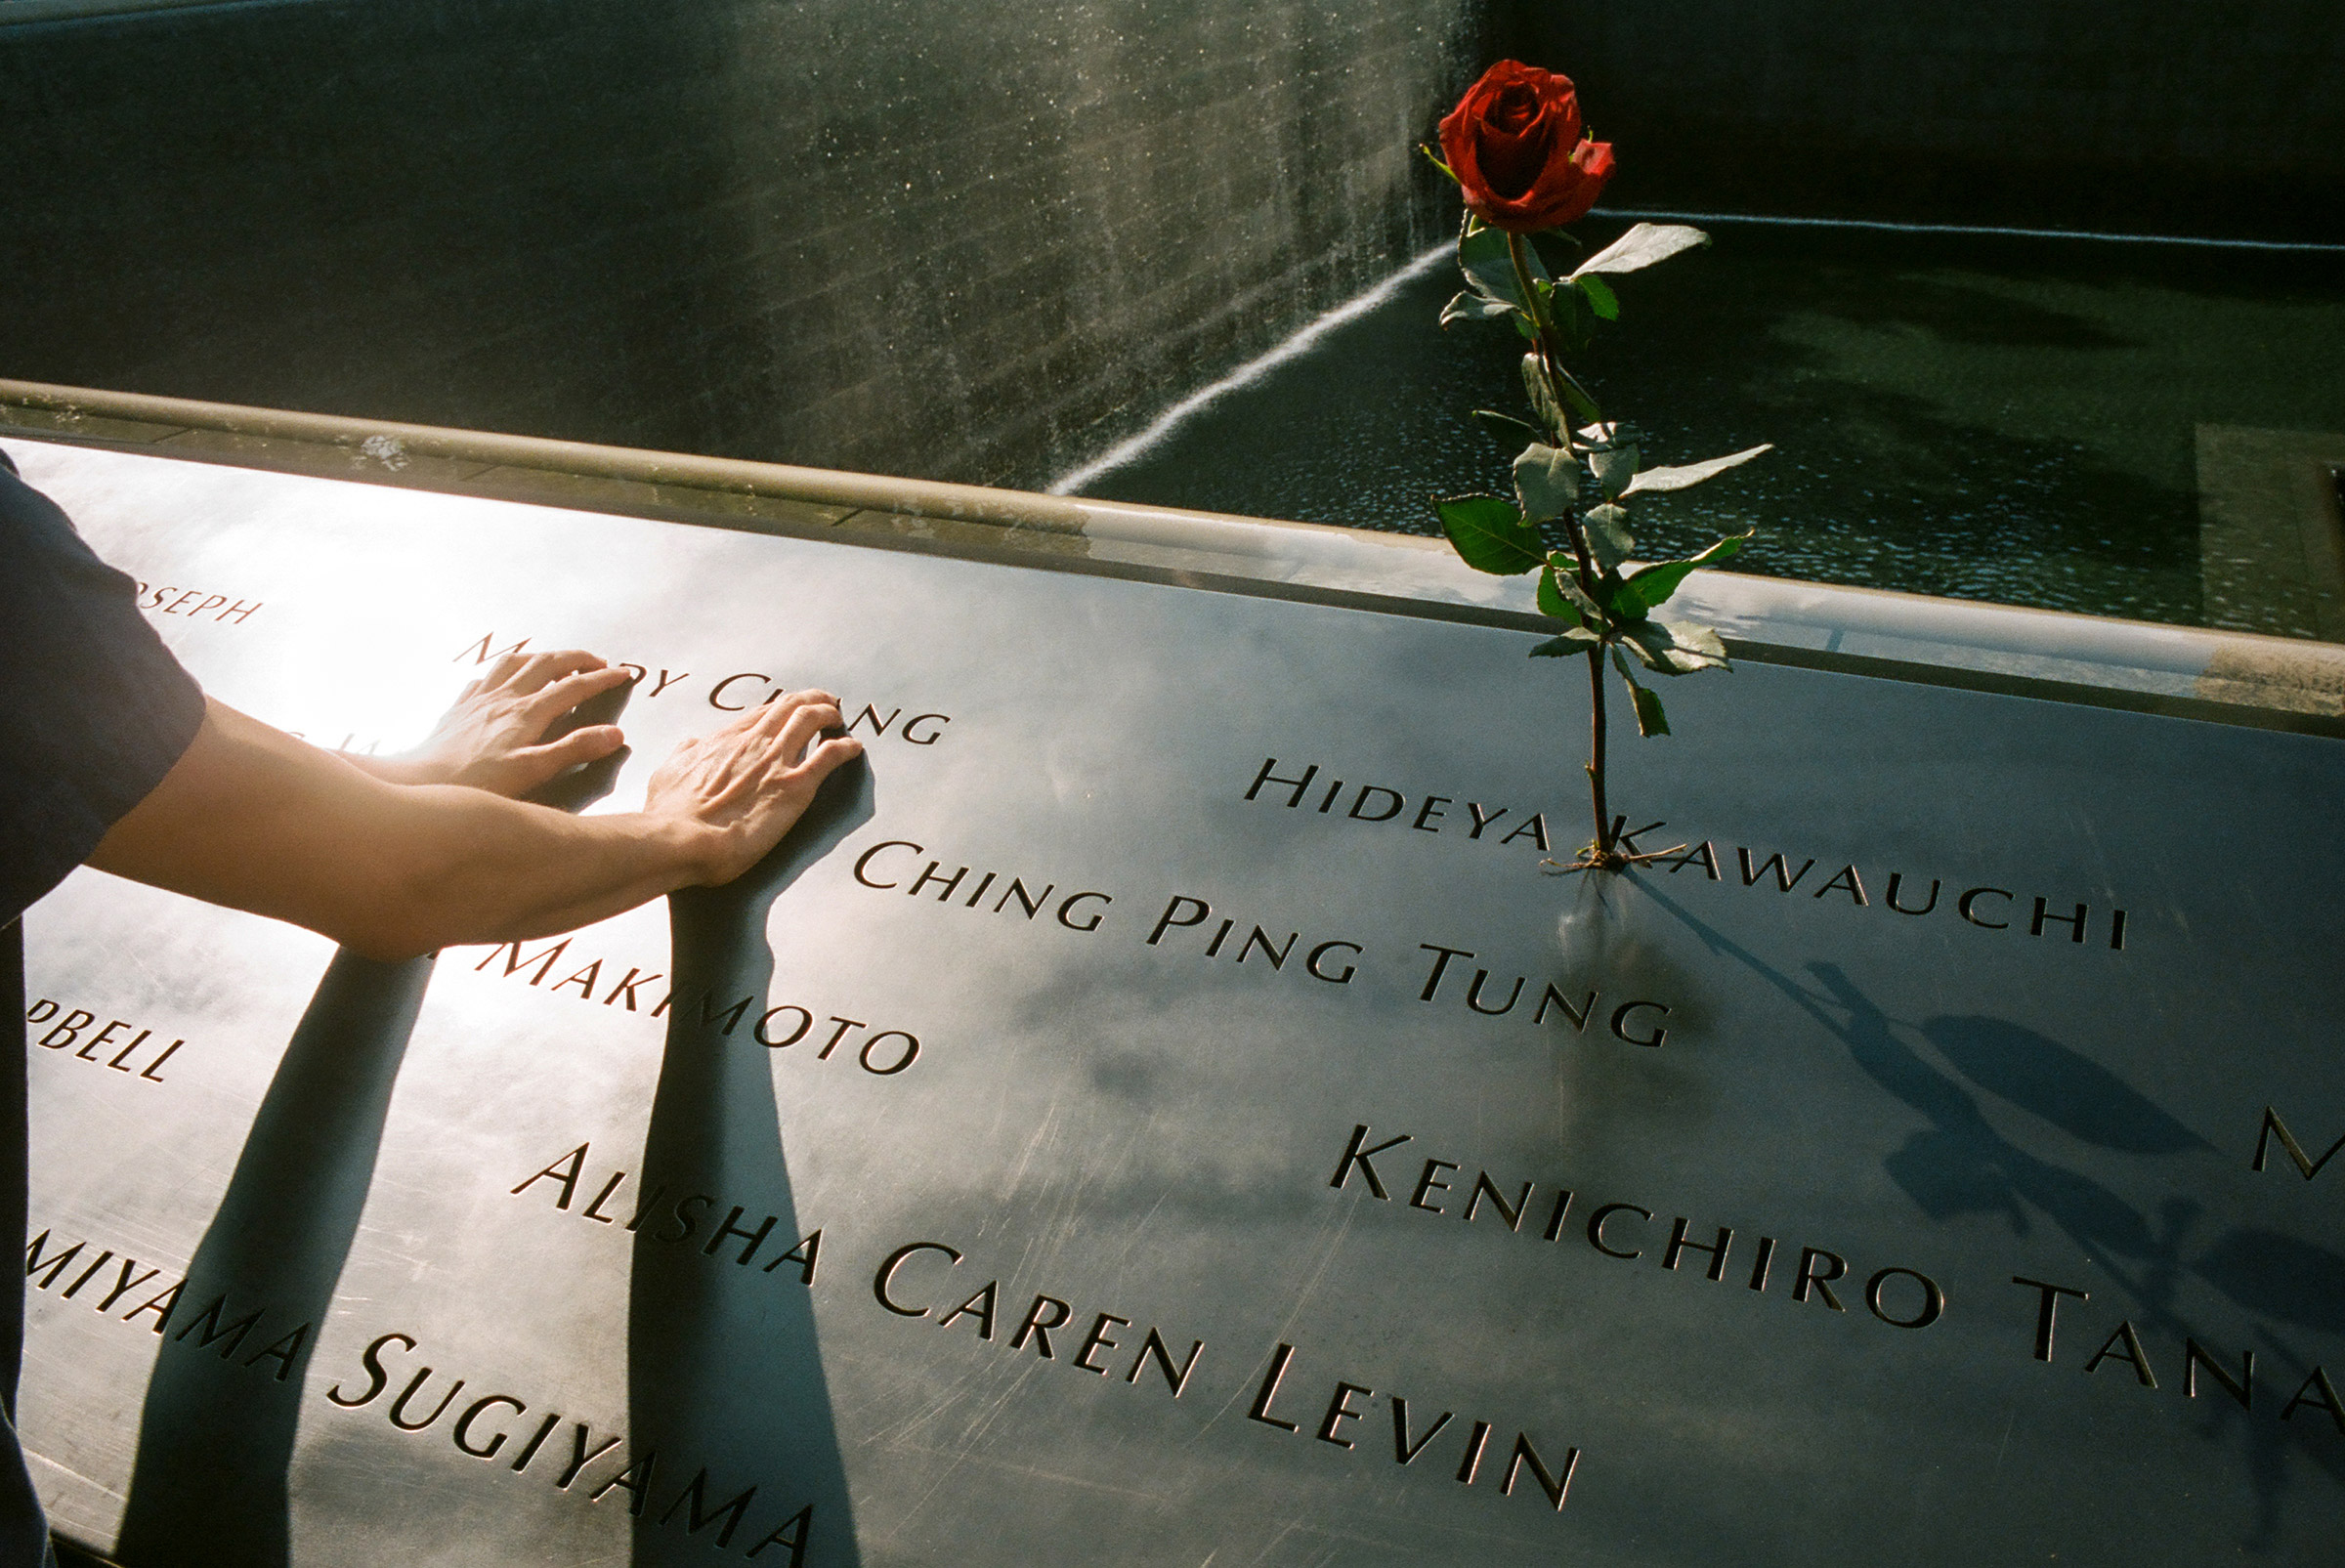 A mourner clings to the name of a lost loved one at the 9/11 memorial, Sept. 11, 2020.